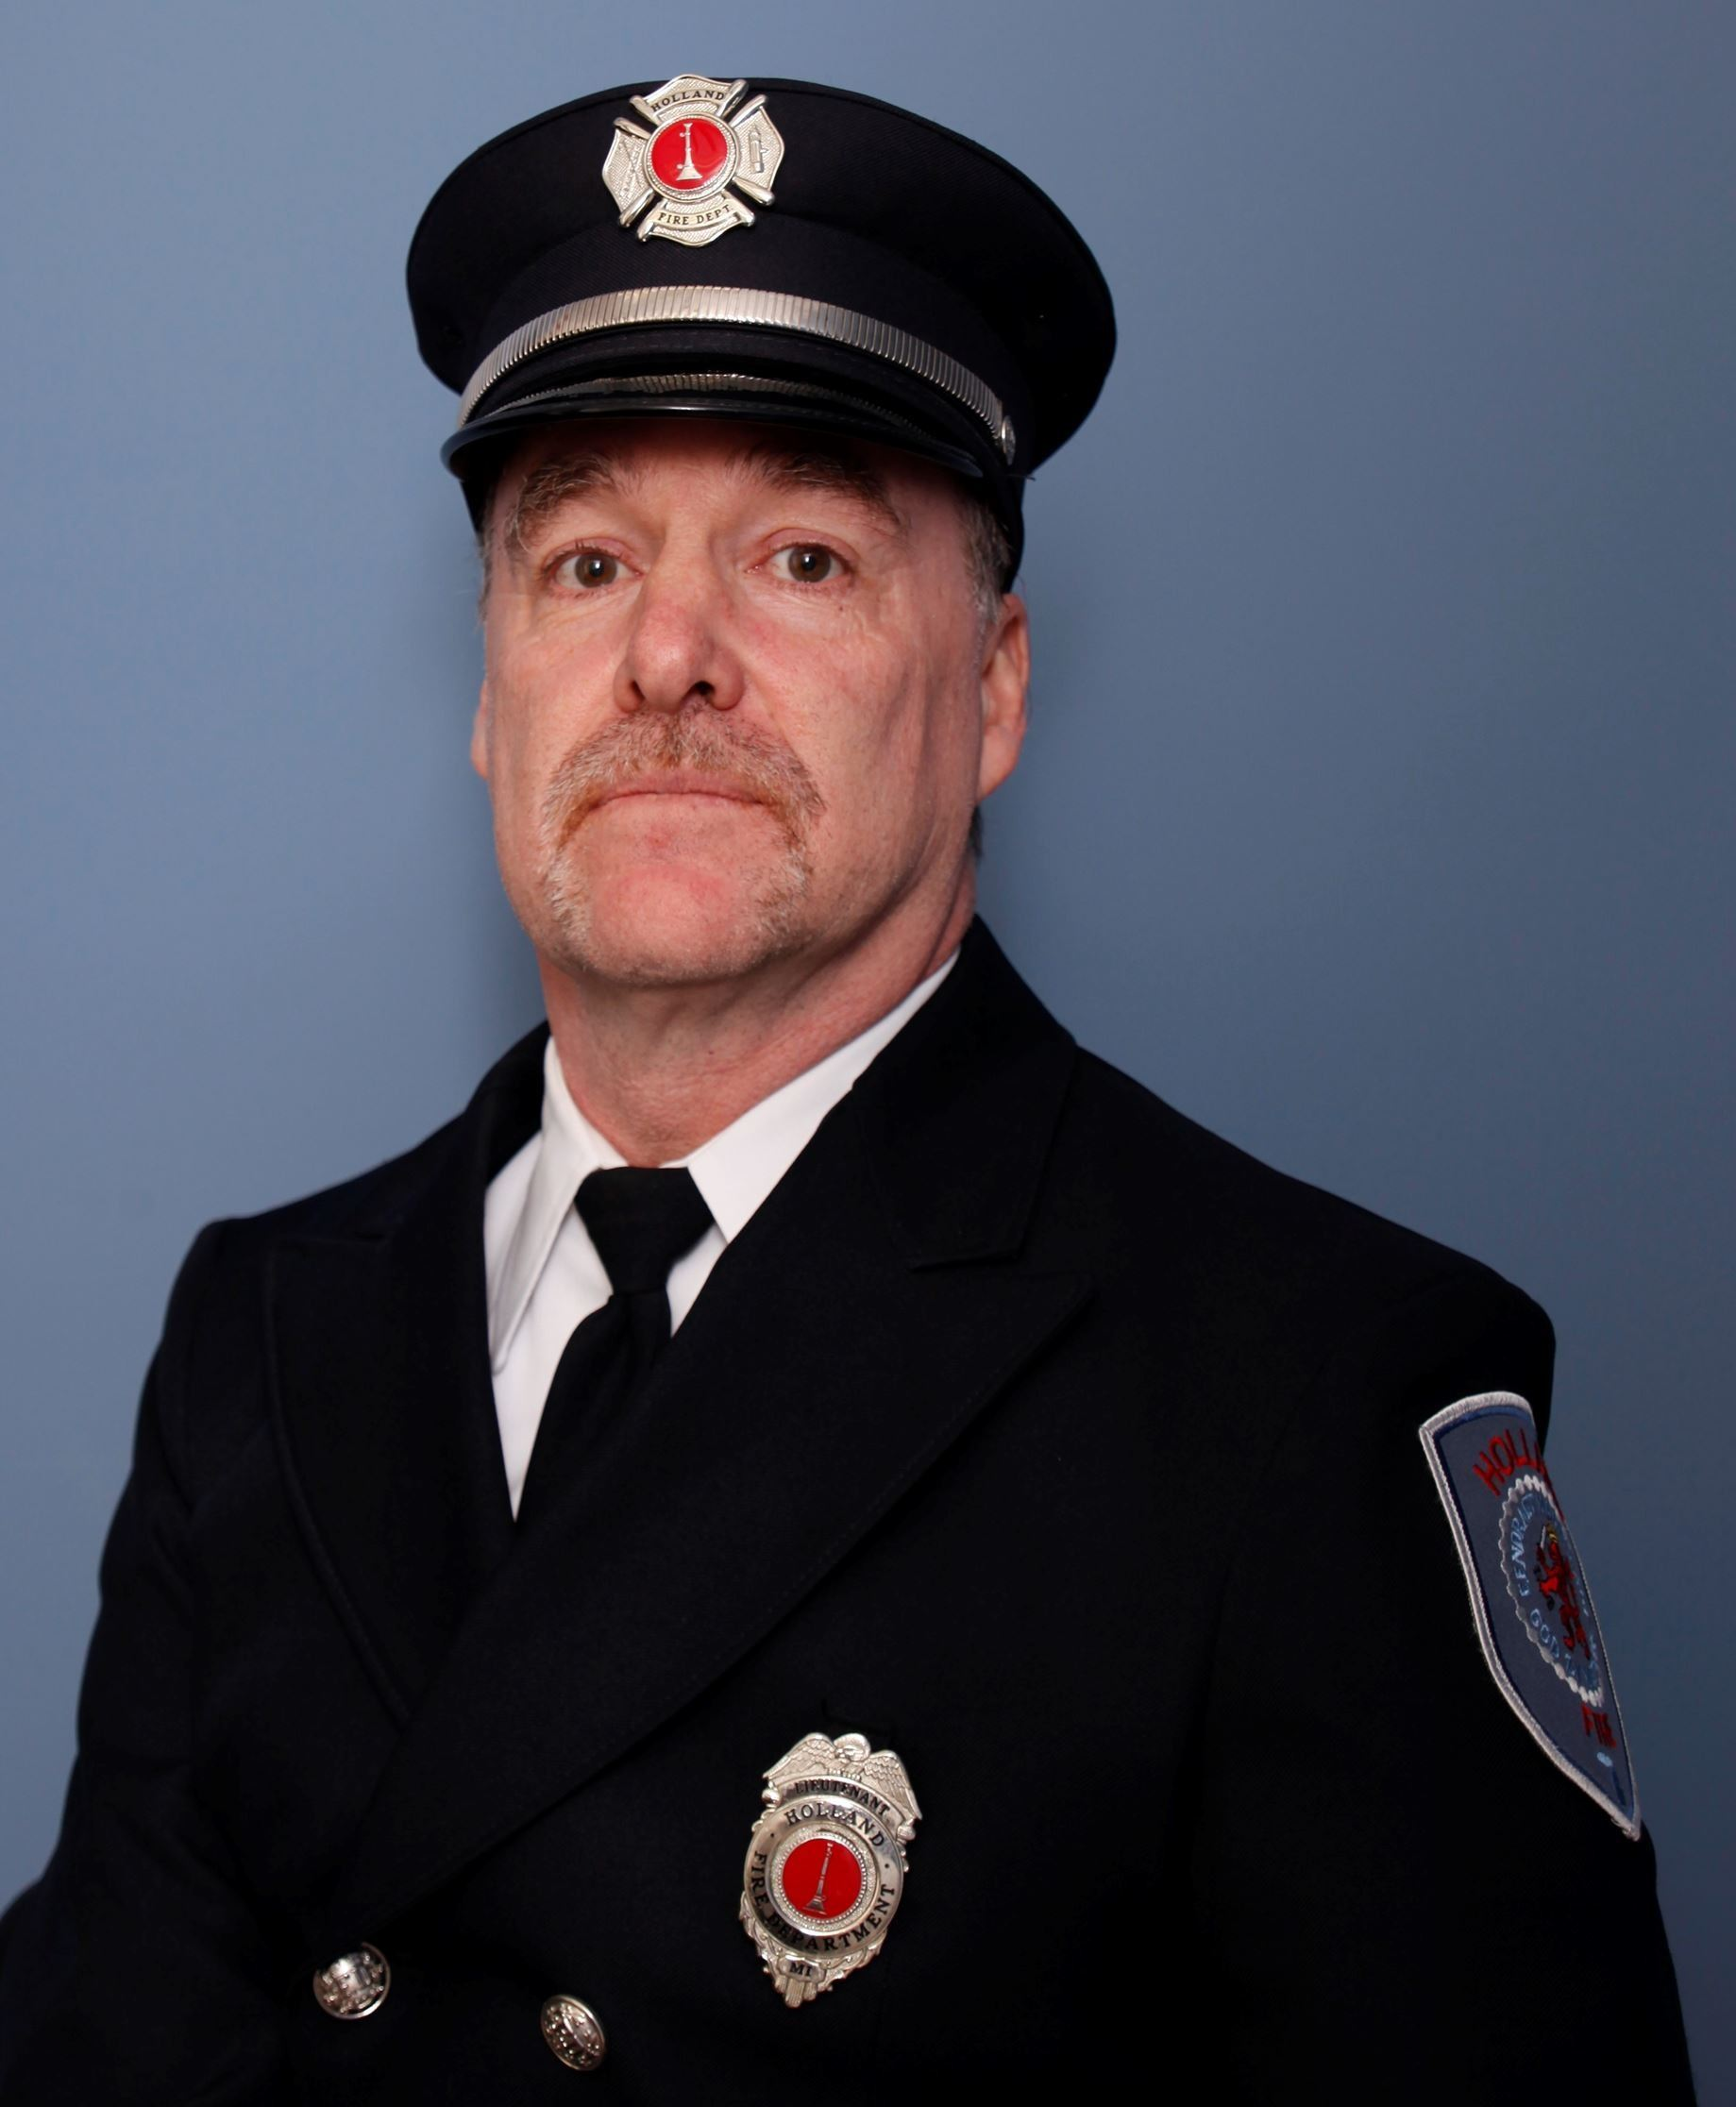 FF Lt T. Fisher